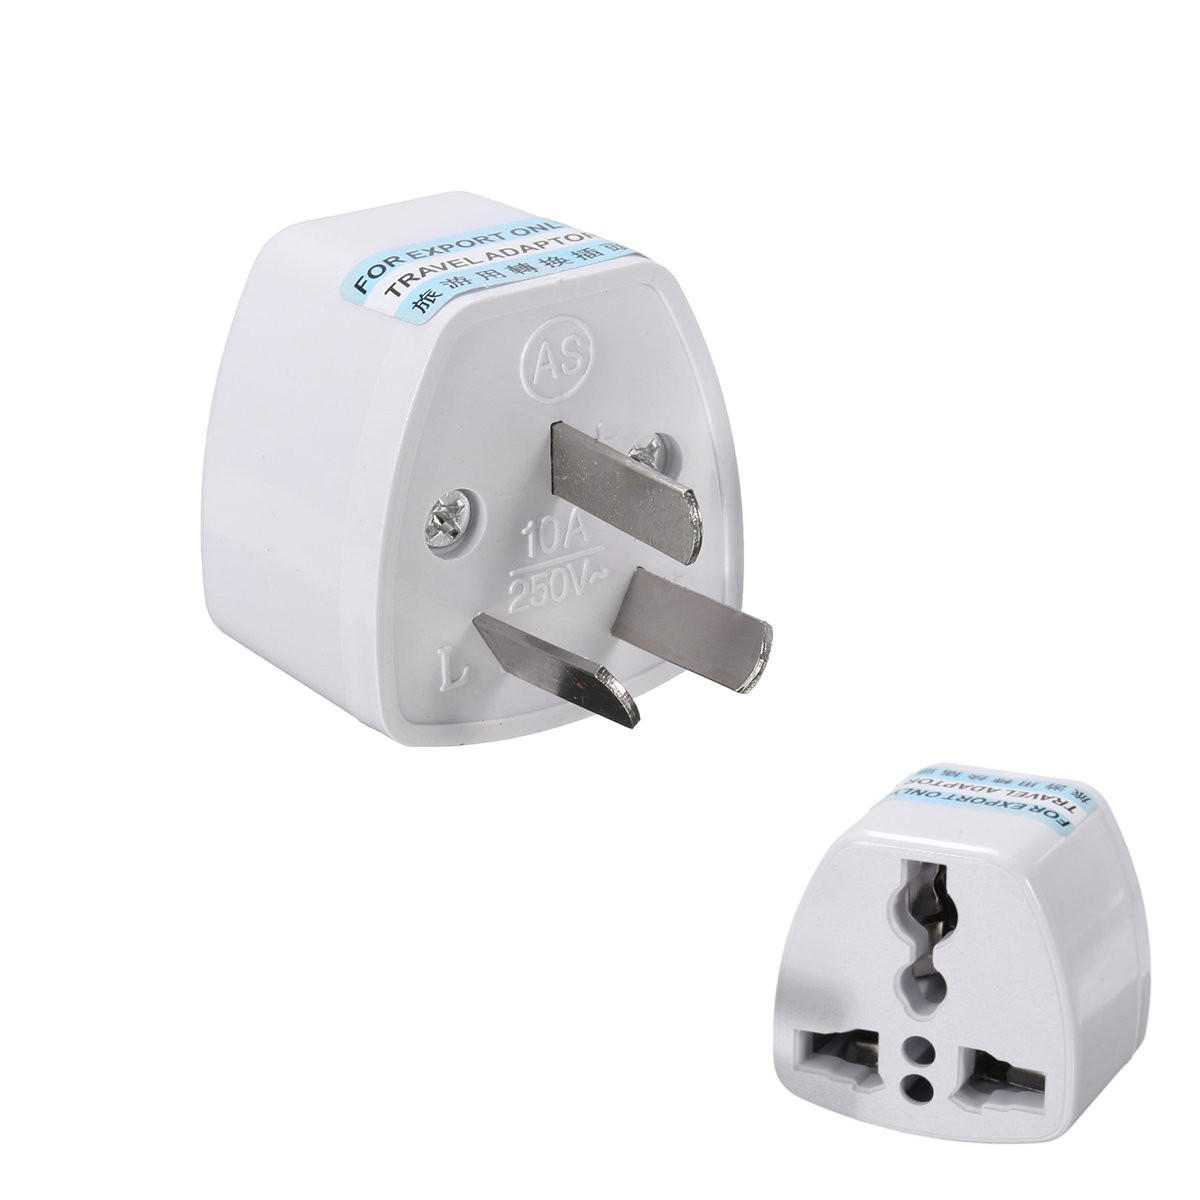 Travel Adapter Eu To Uk Universal Power Plug Travel Adapter 3 Pin Converter 250v 10a Us Uk Eu To Au Ac